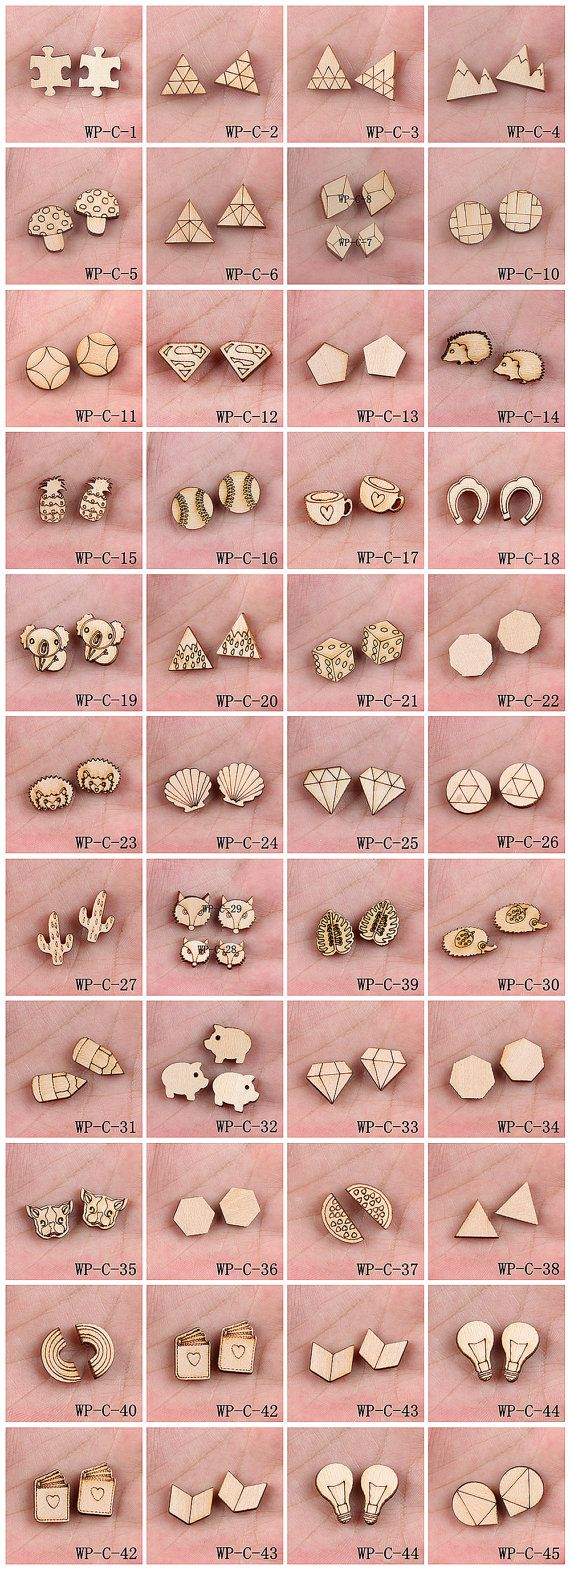 4Pcs All Design DIY Laser Cut Wood Cute Geometric Round Charms / Pendants